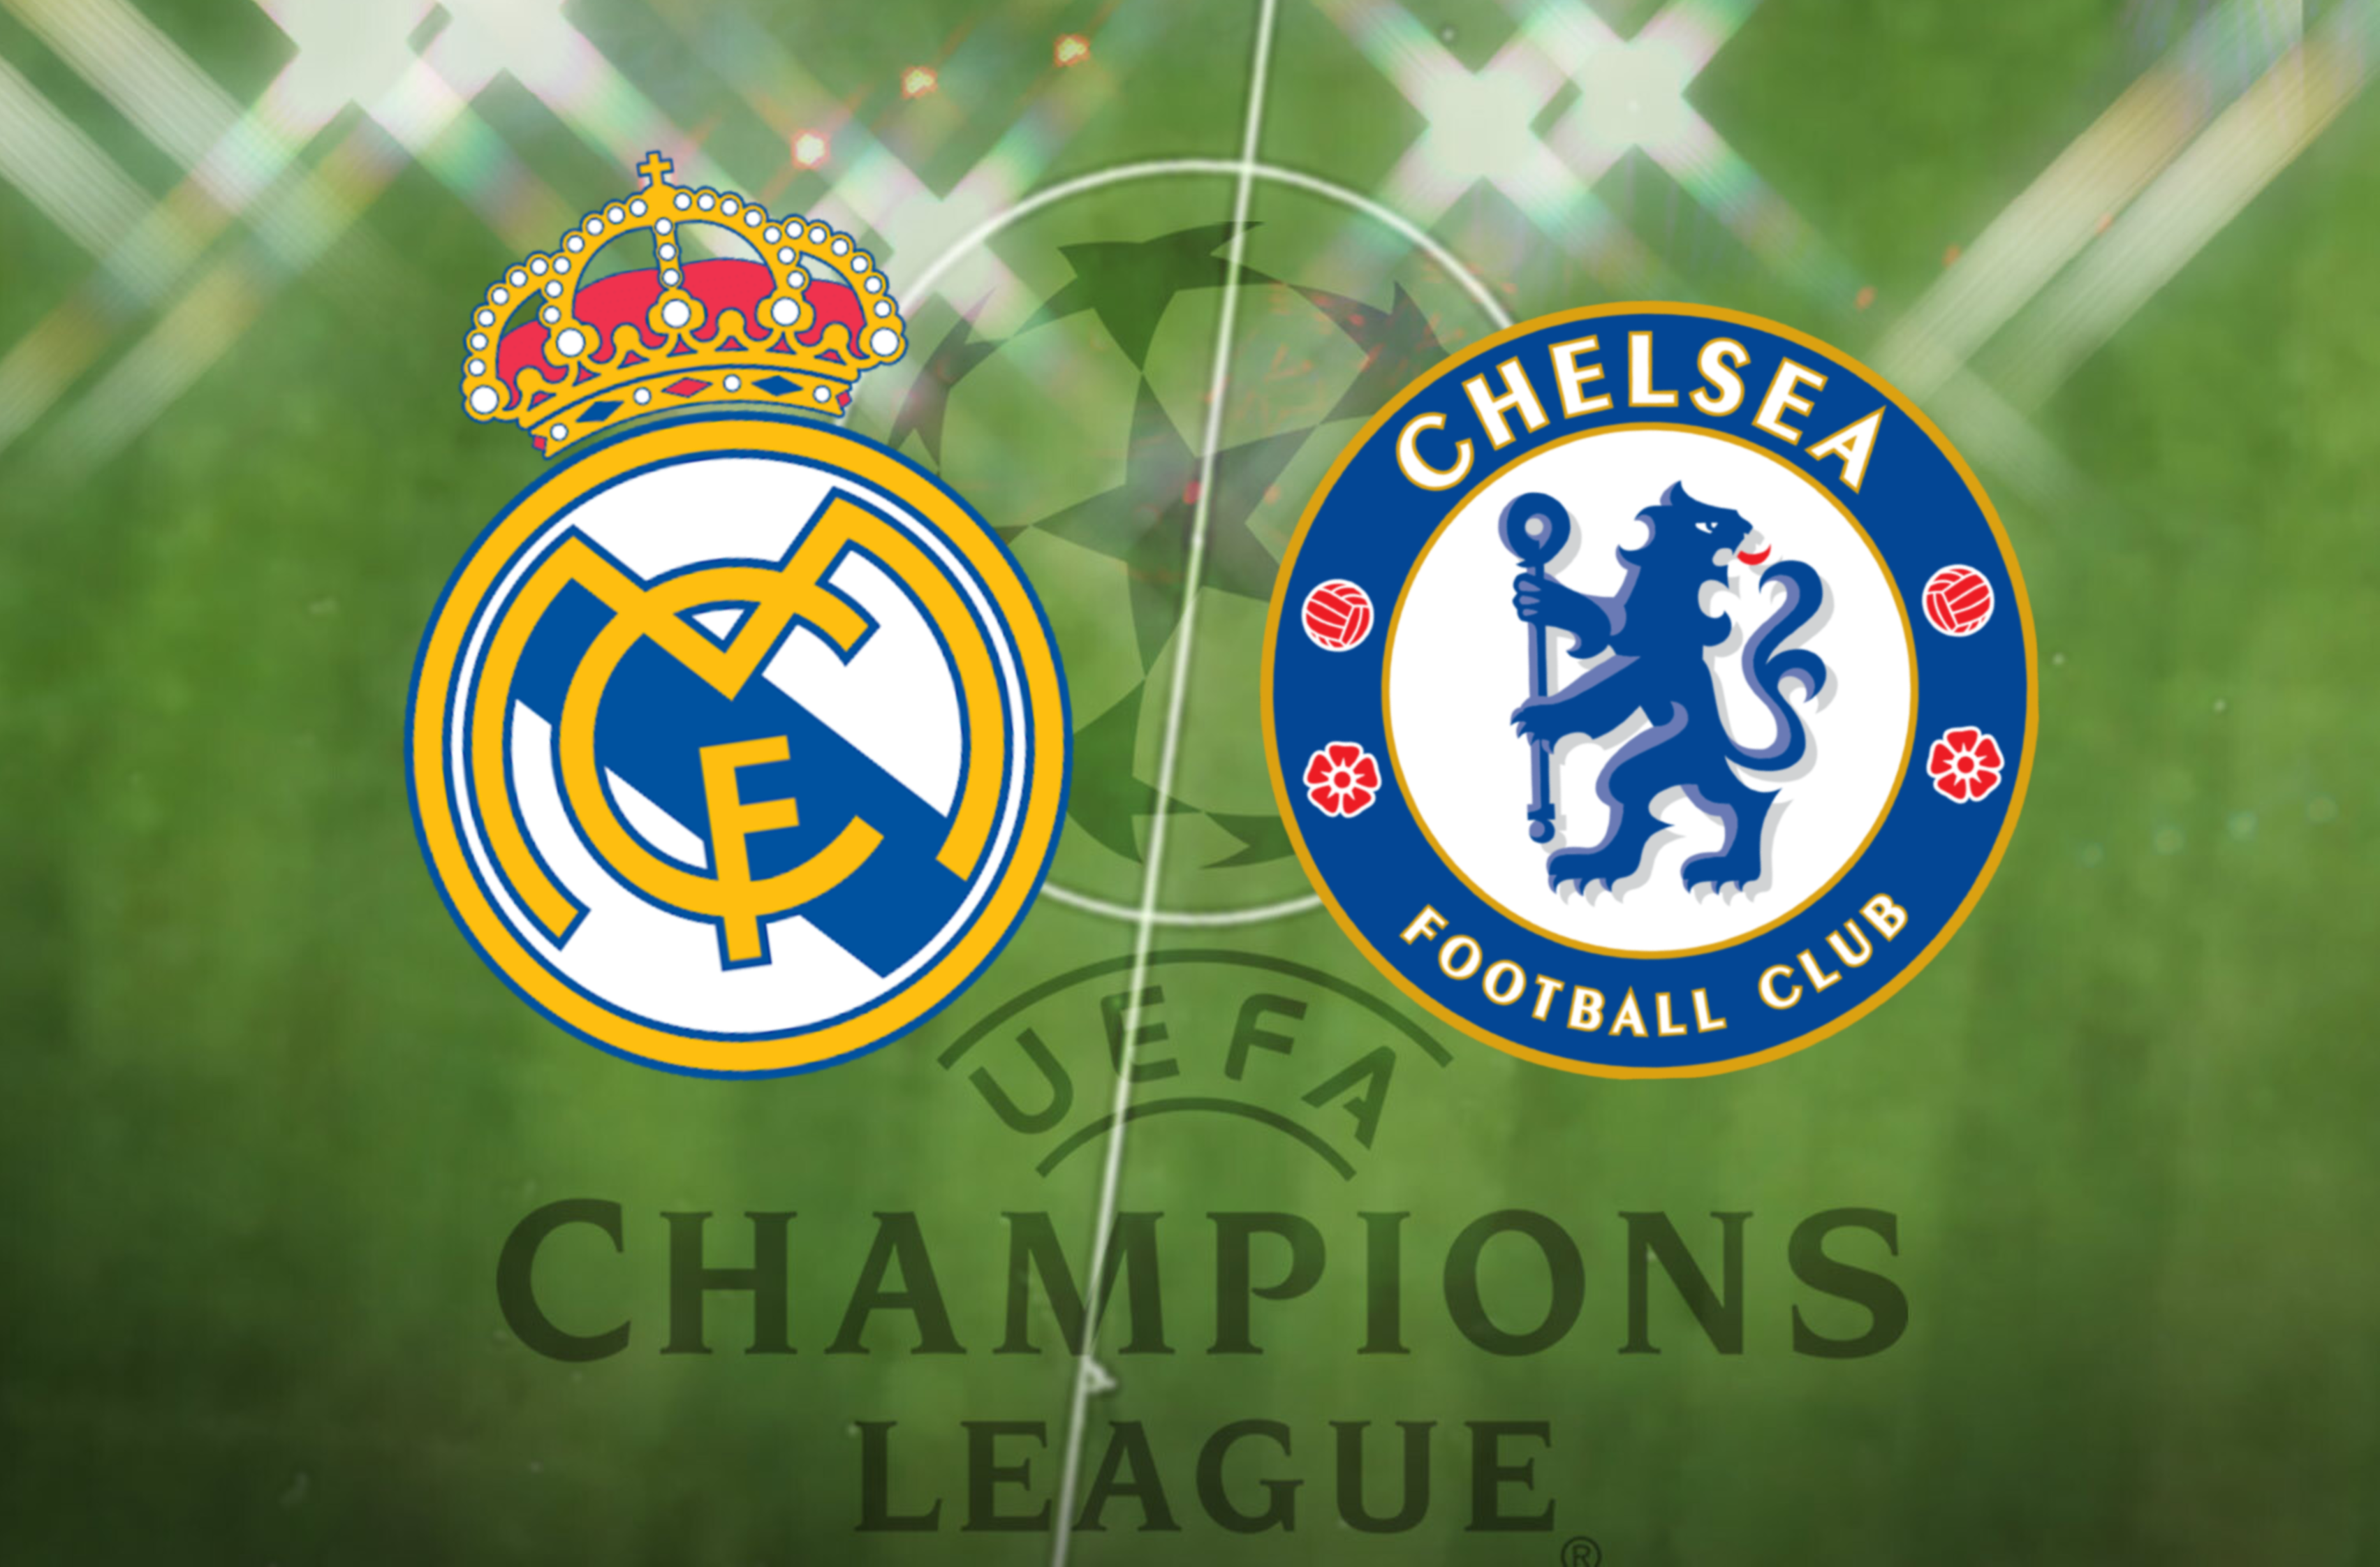 Real Madrid v Chelsea FC: Champions League prediction, where to watch on TV, live stream, head to head results